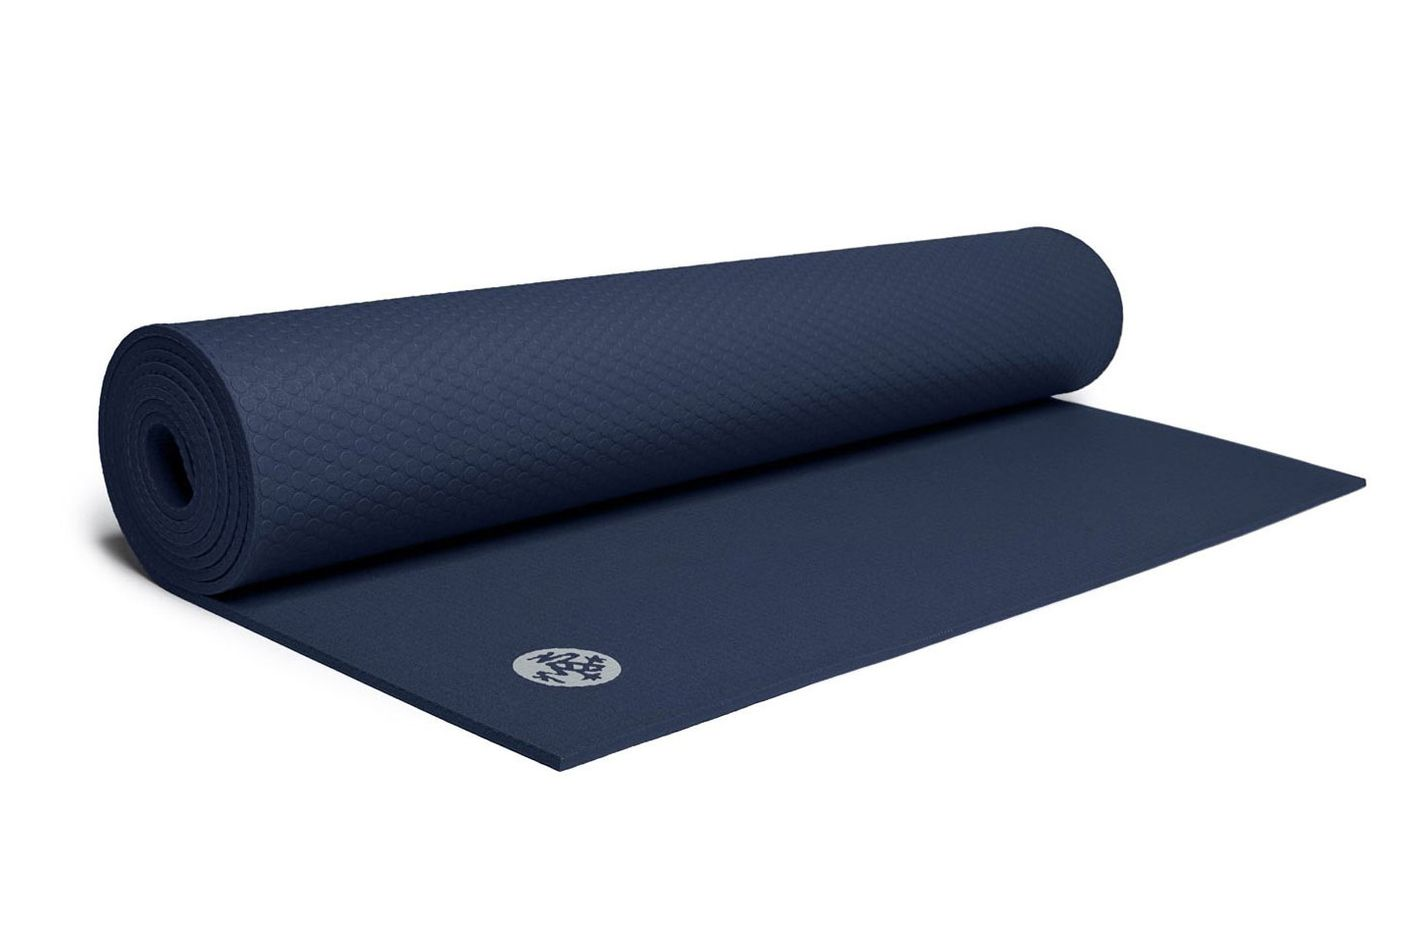 The Best Yoga Mat According To Yogis